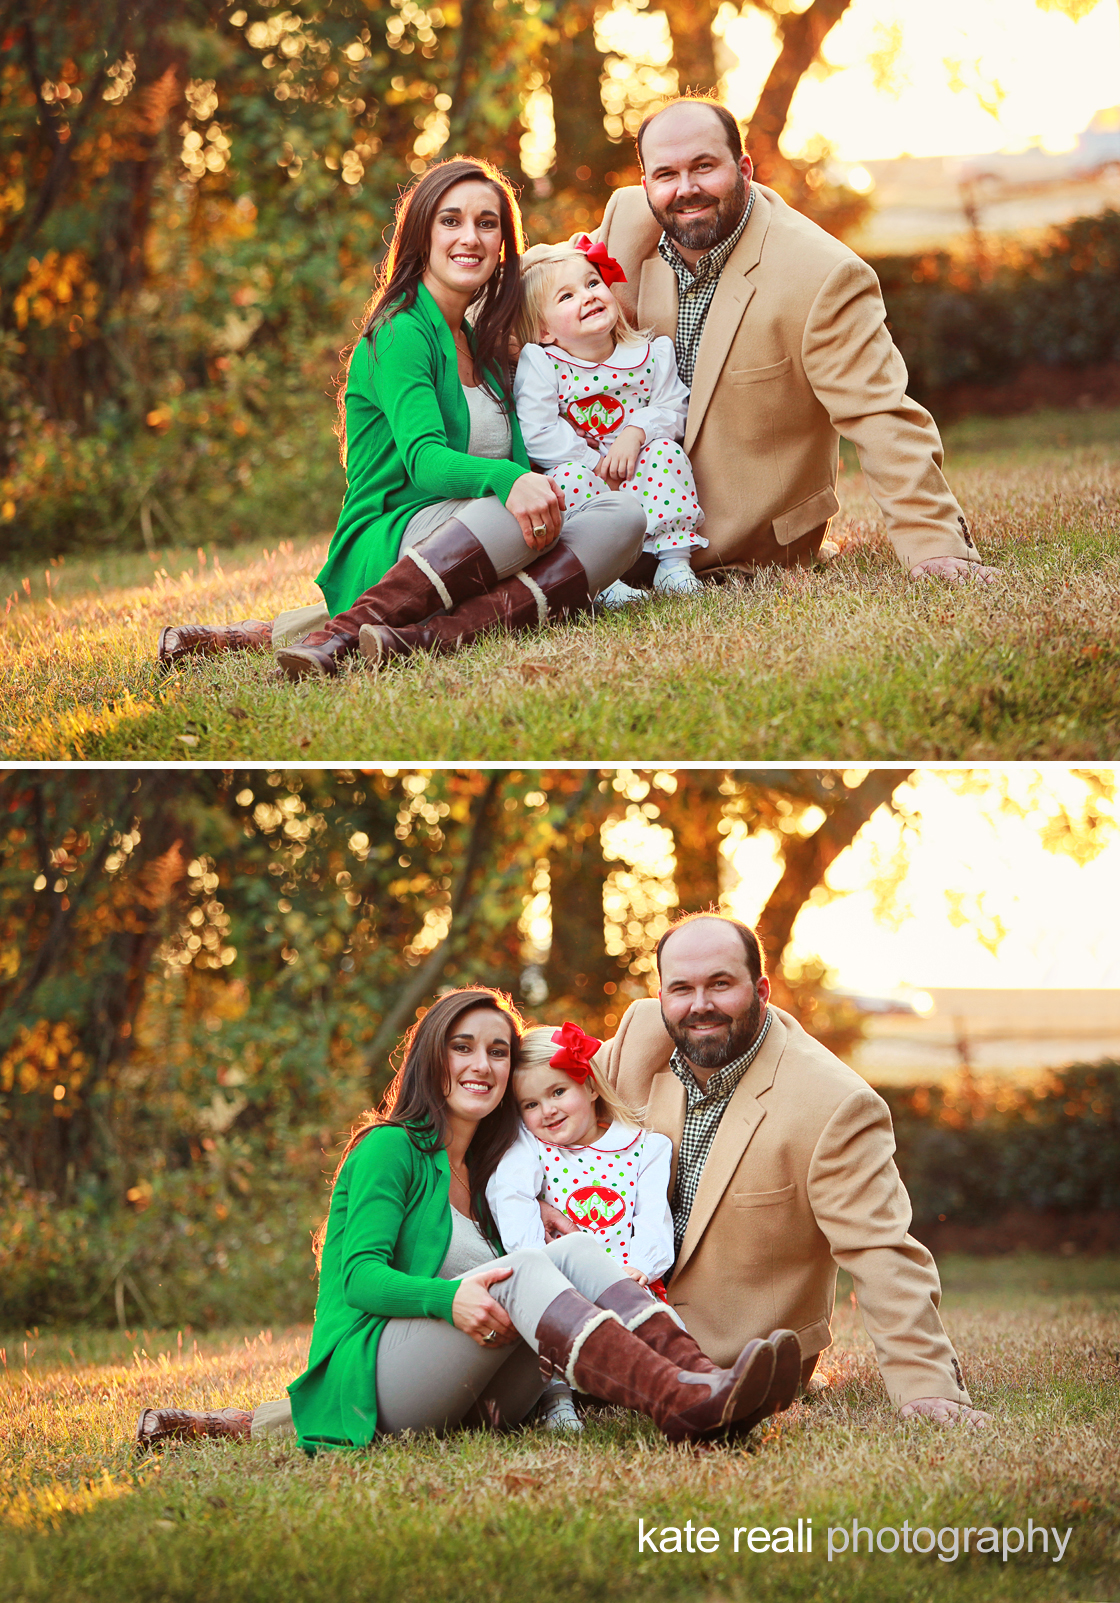 kate reali photography family 4